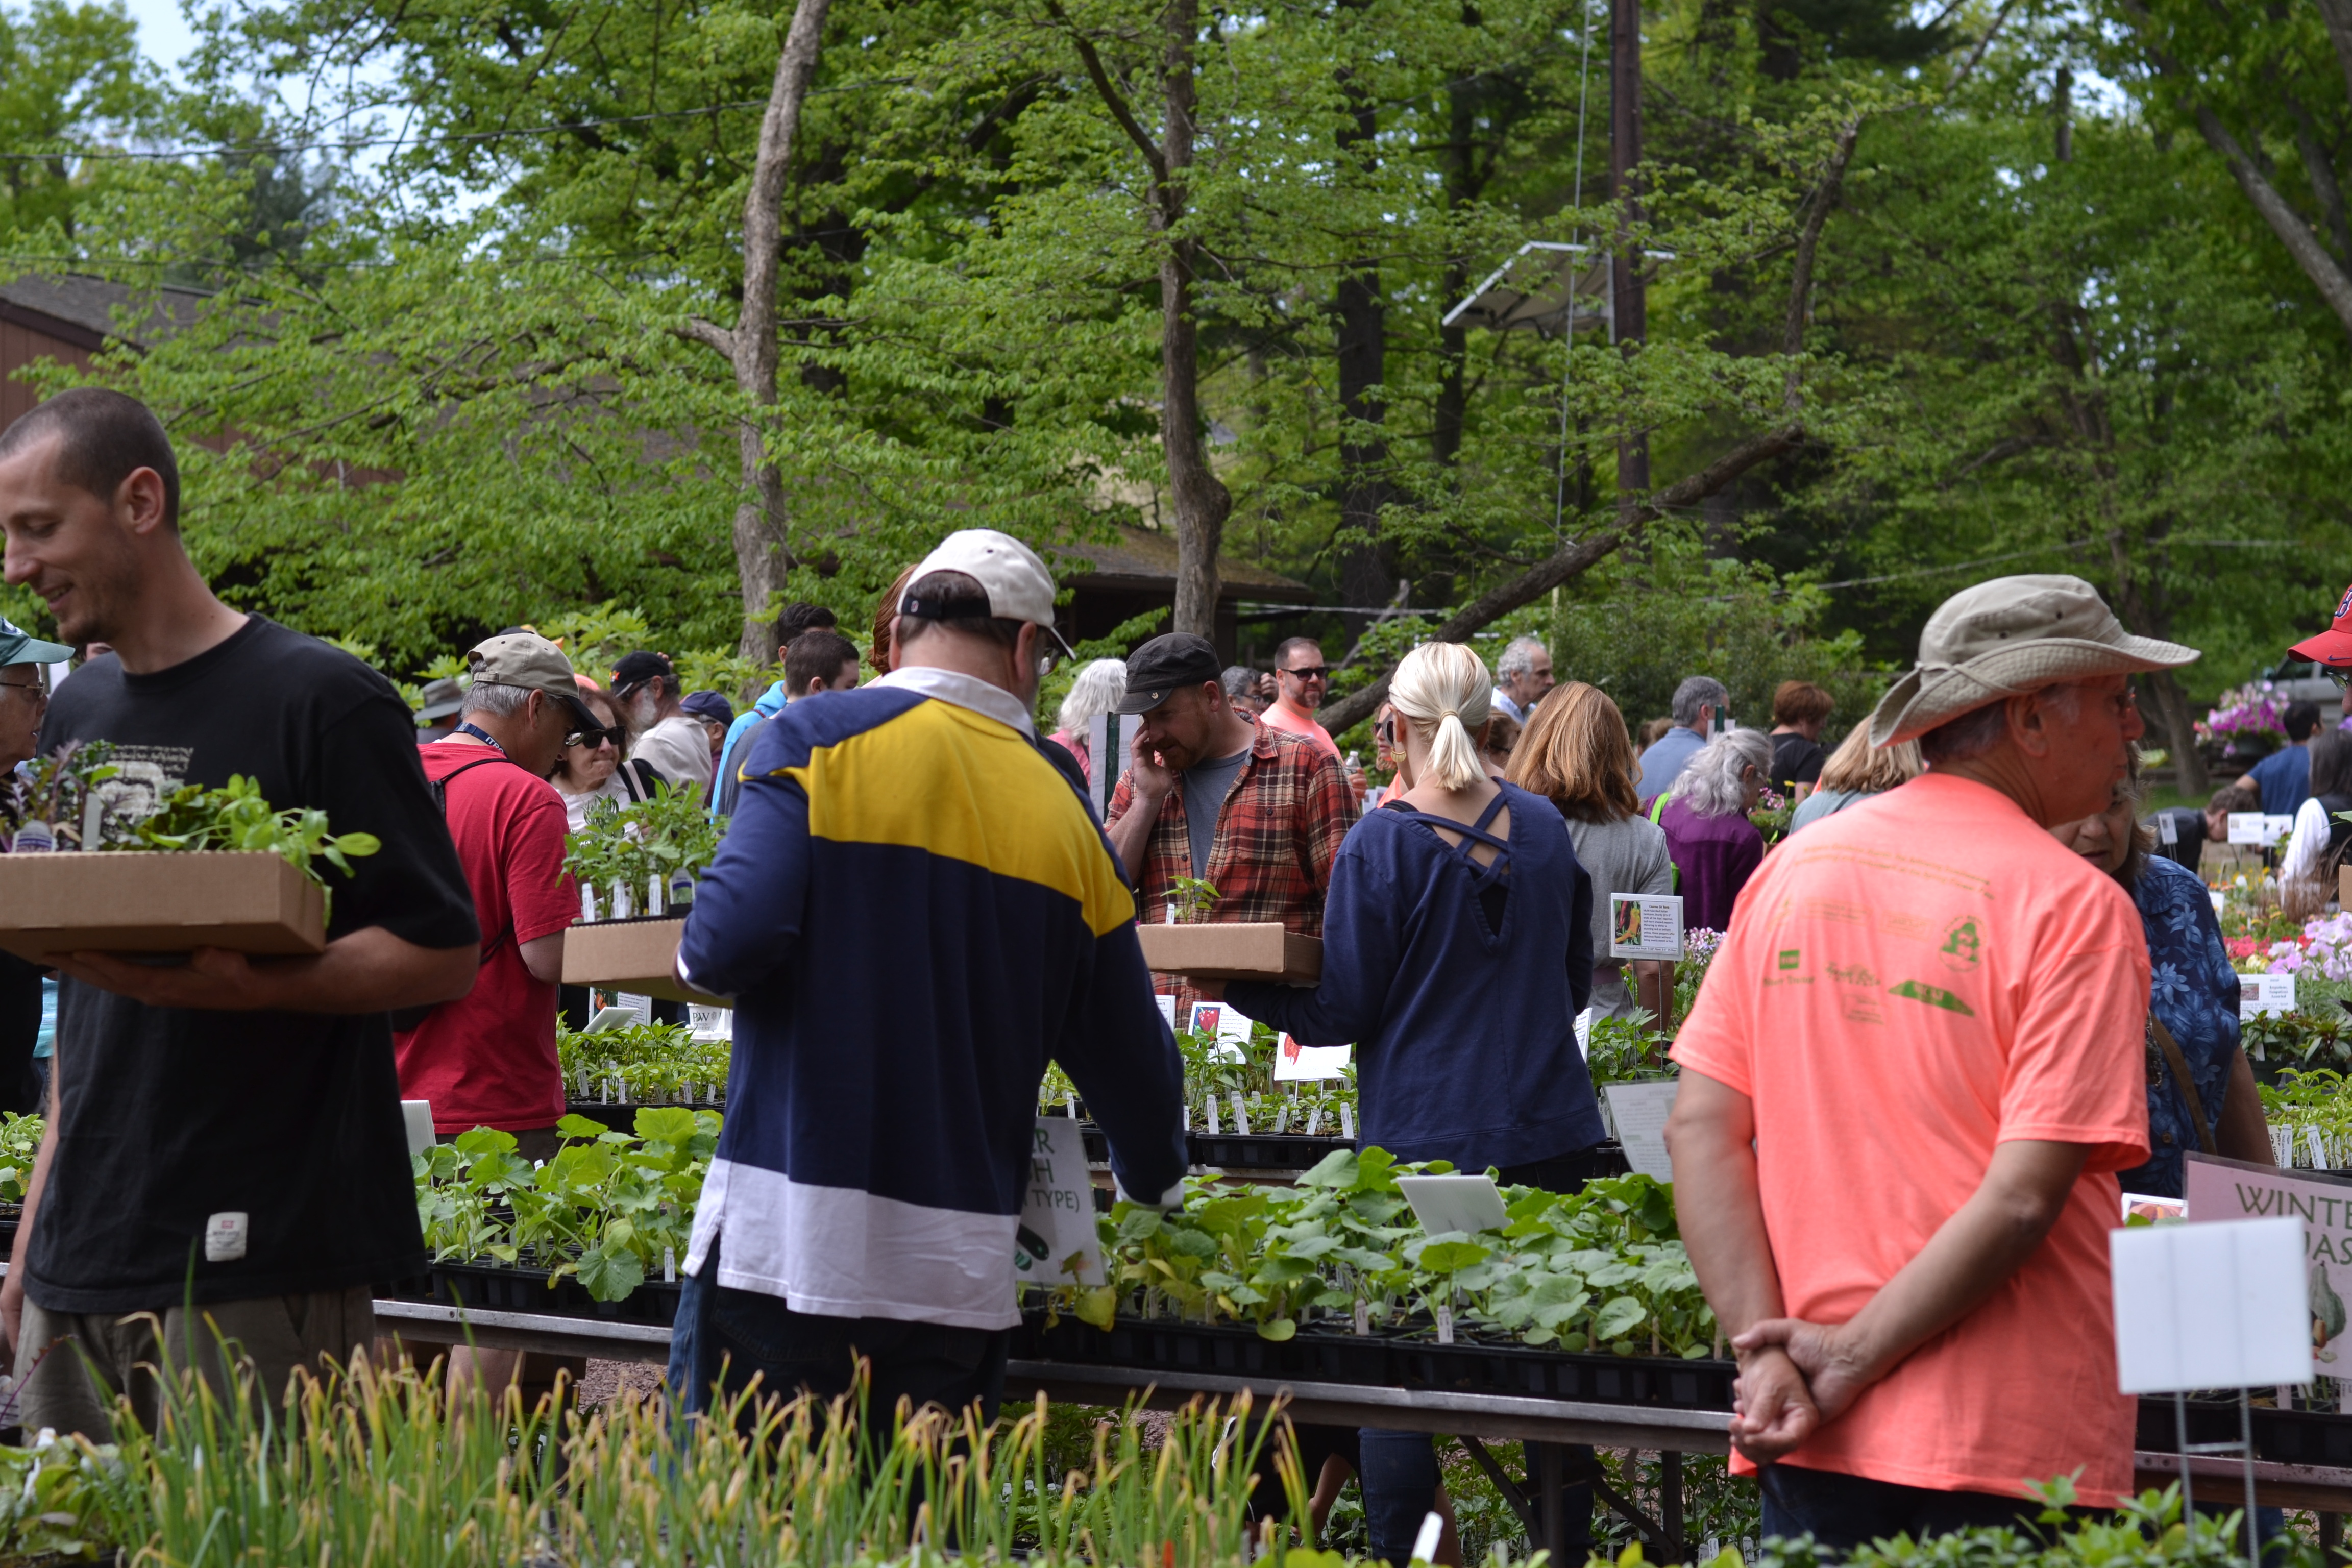 group of people shopping at plant sale